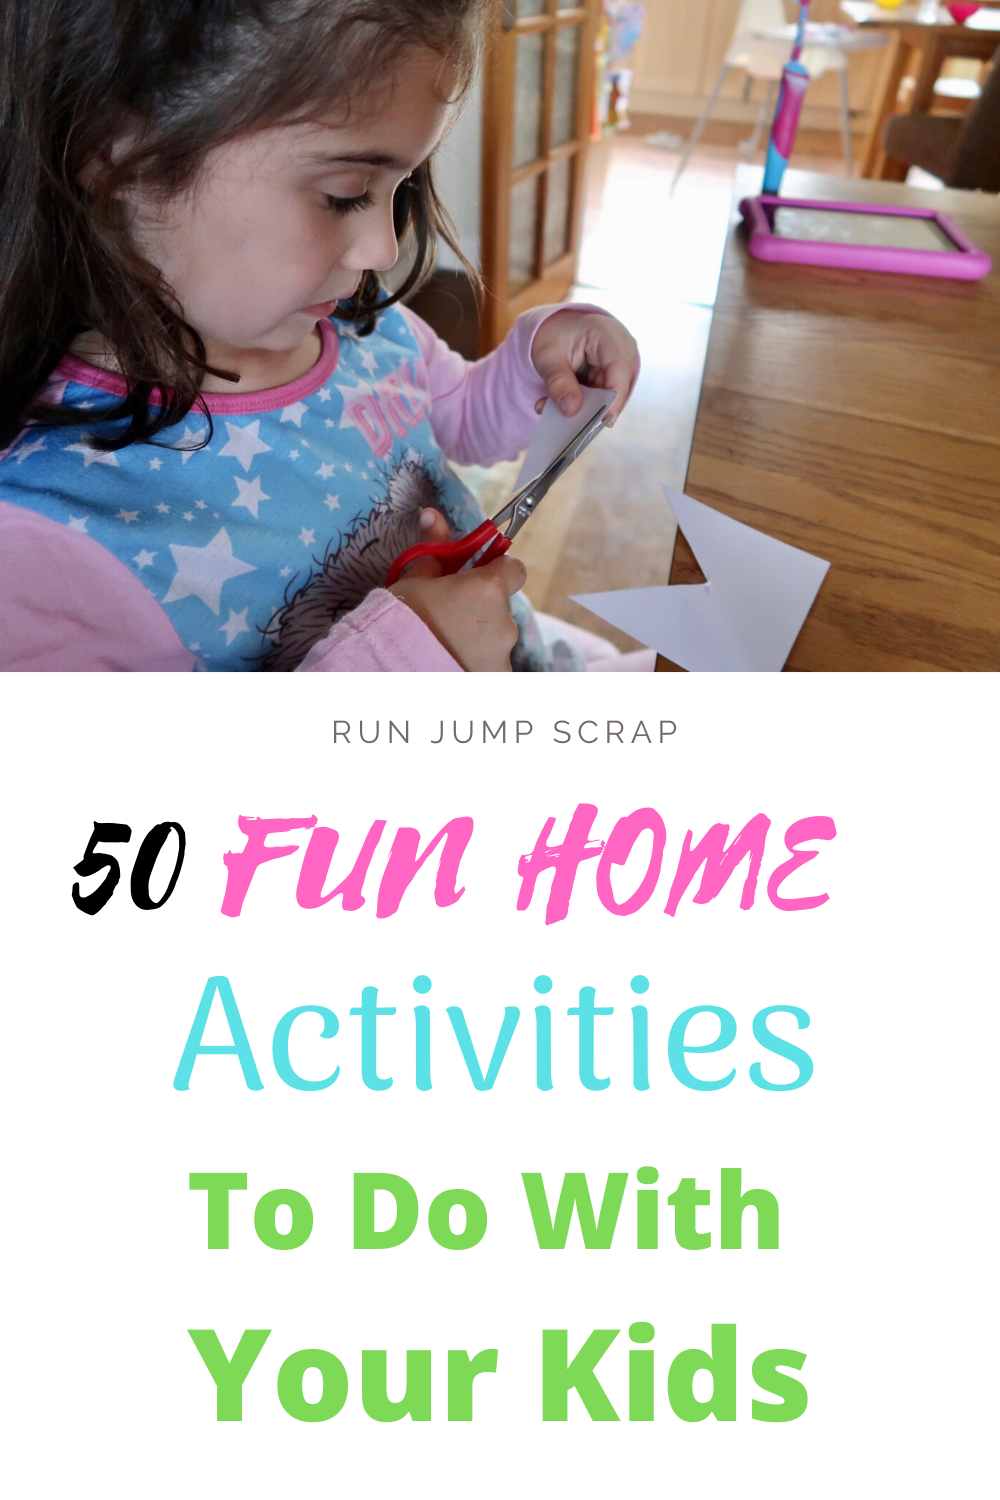 50 fun home activities to do with your kids